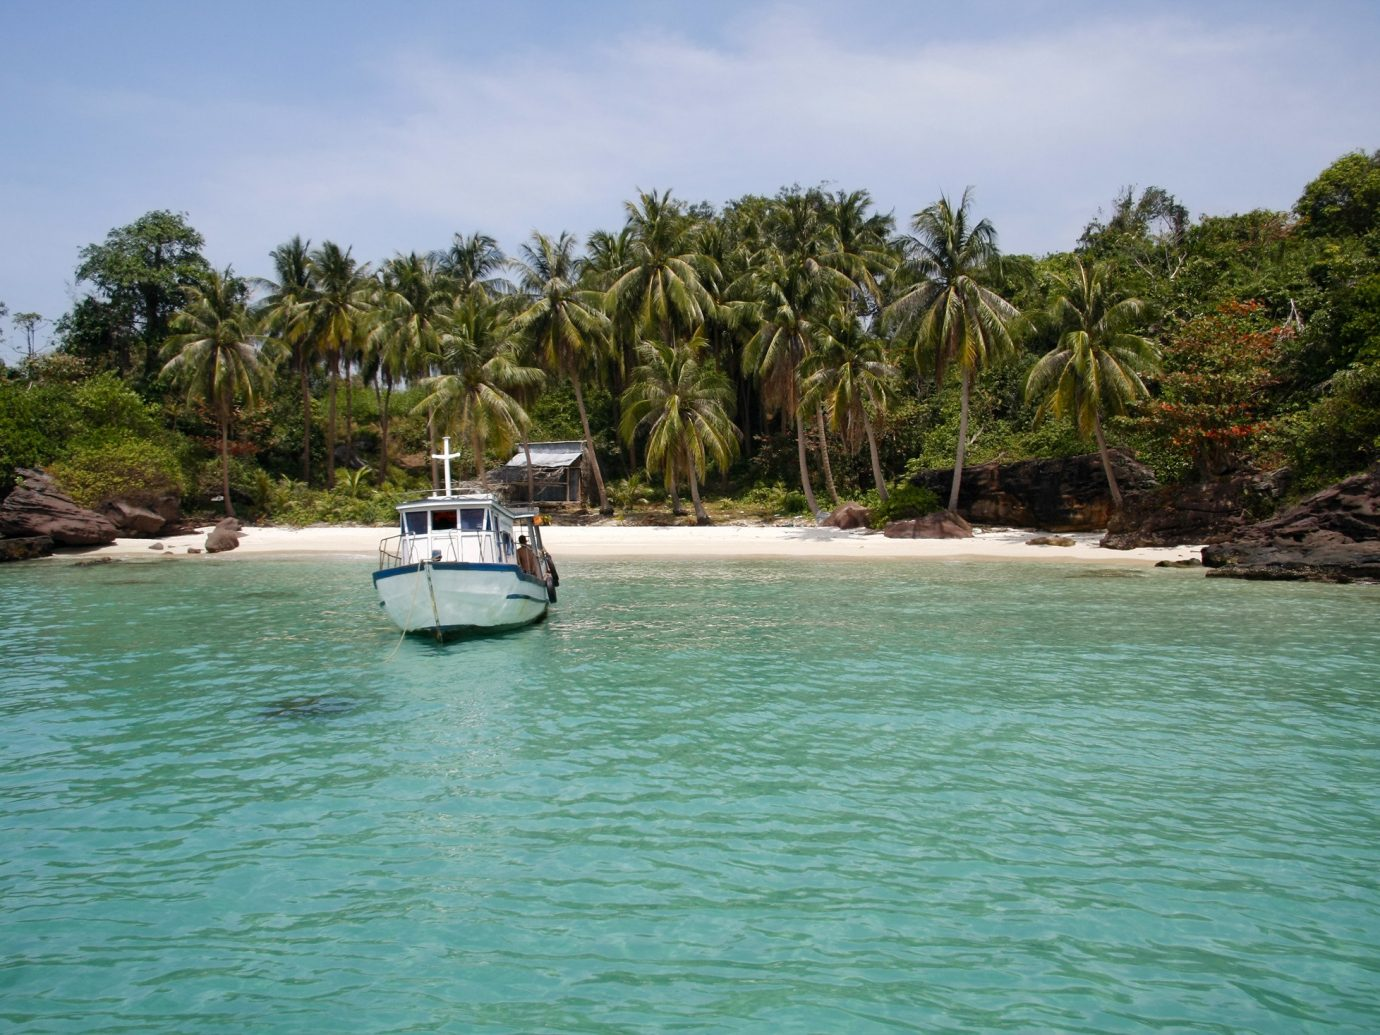 Romantic Getaways outdoor tree water sky waterway body of water coastal and oceanic landforms Sea tropics Lagoon Resort arecales bay caribbean Island Coast Boat palm tree shore Ocean inlet tourism leisure vacation plant community plant cove Beach cay landscape Jungle surrounded day several